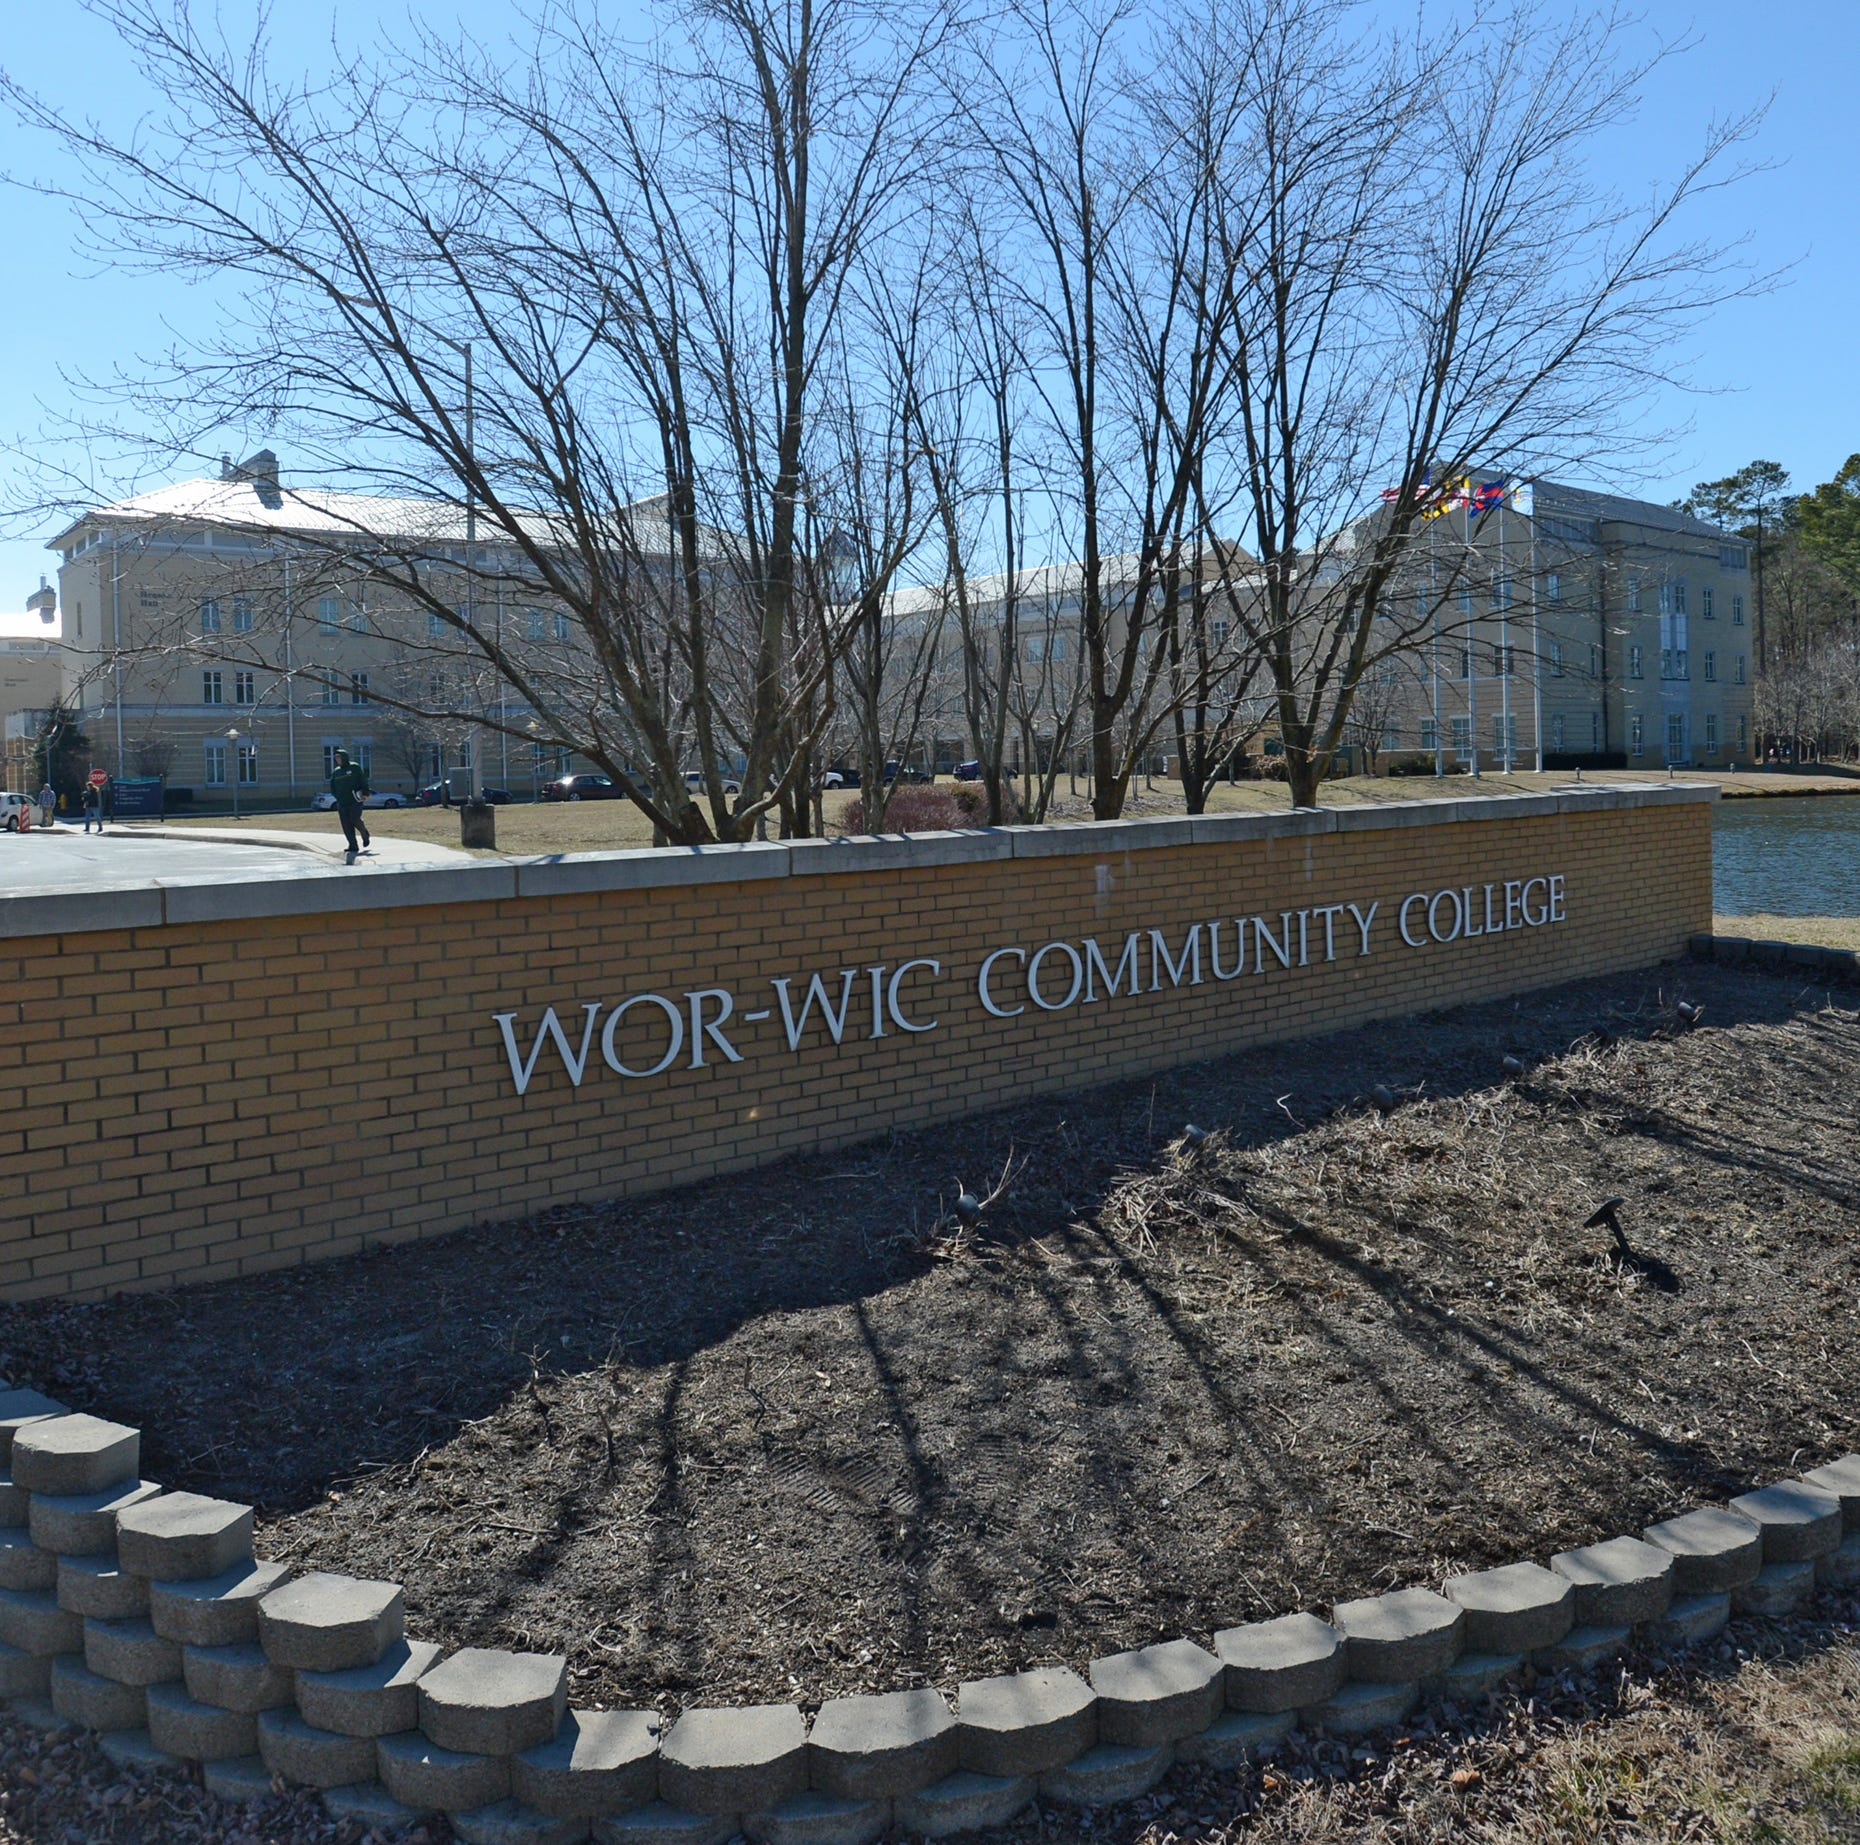 Wor-Wic police academy lawsuit: Defendants deny negligence, discrimination allegations